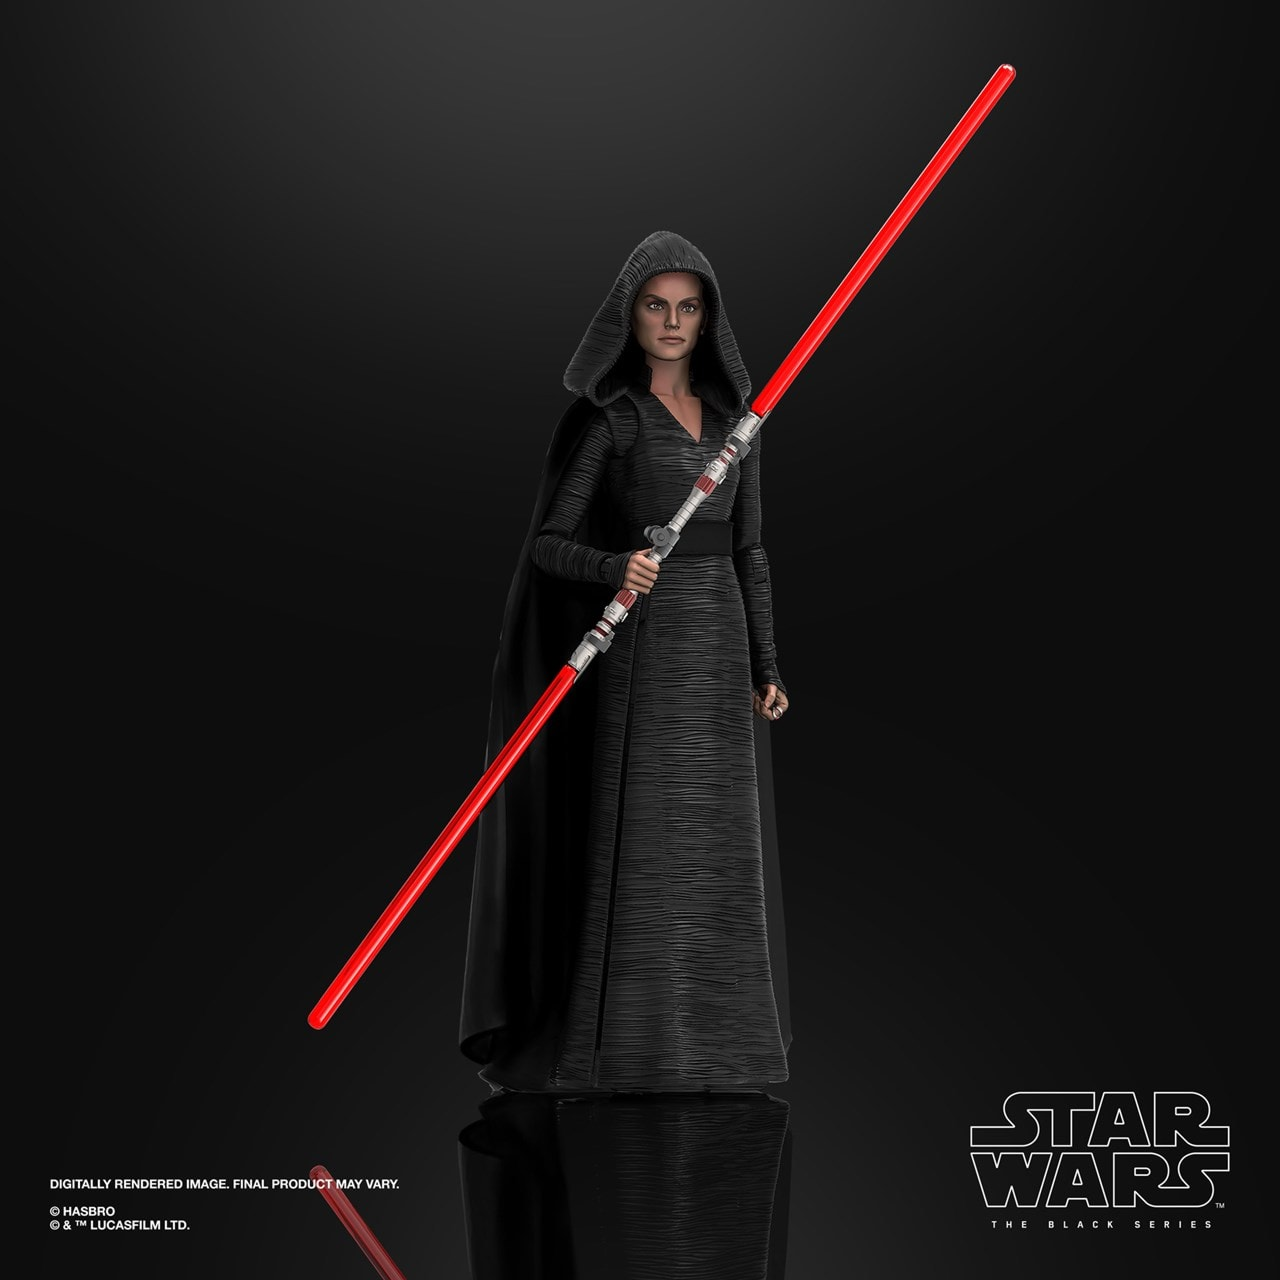 Rey (Dark Side Vision) Episode 9: The Black Series: Star Wars Action Figure - 2